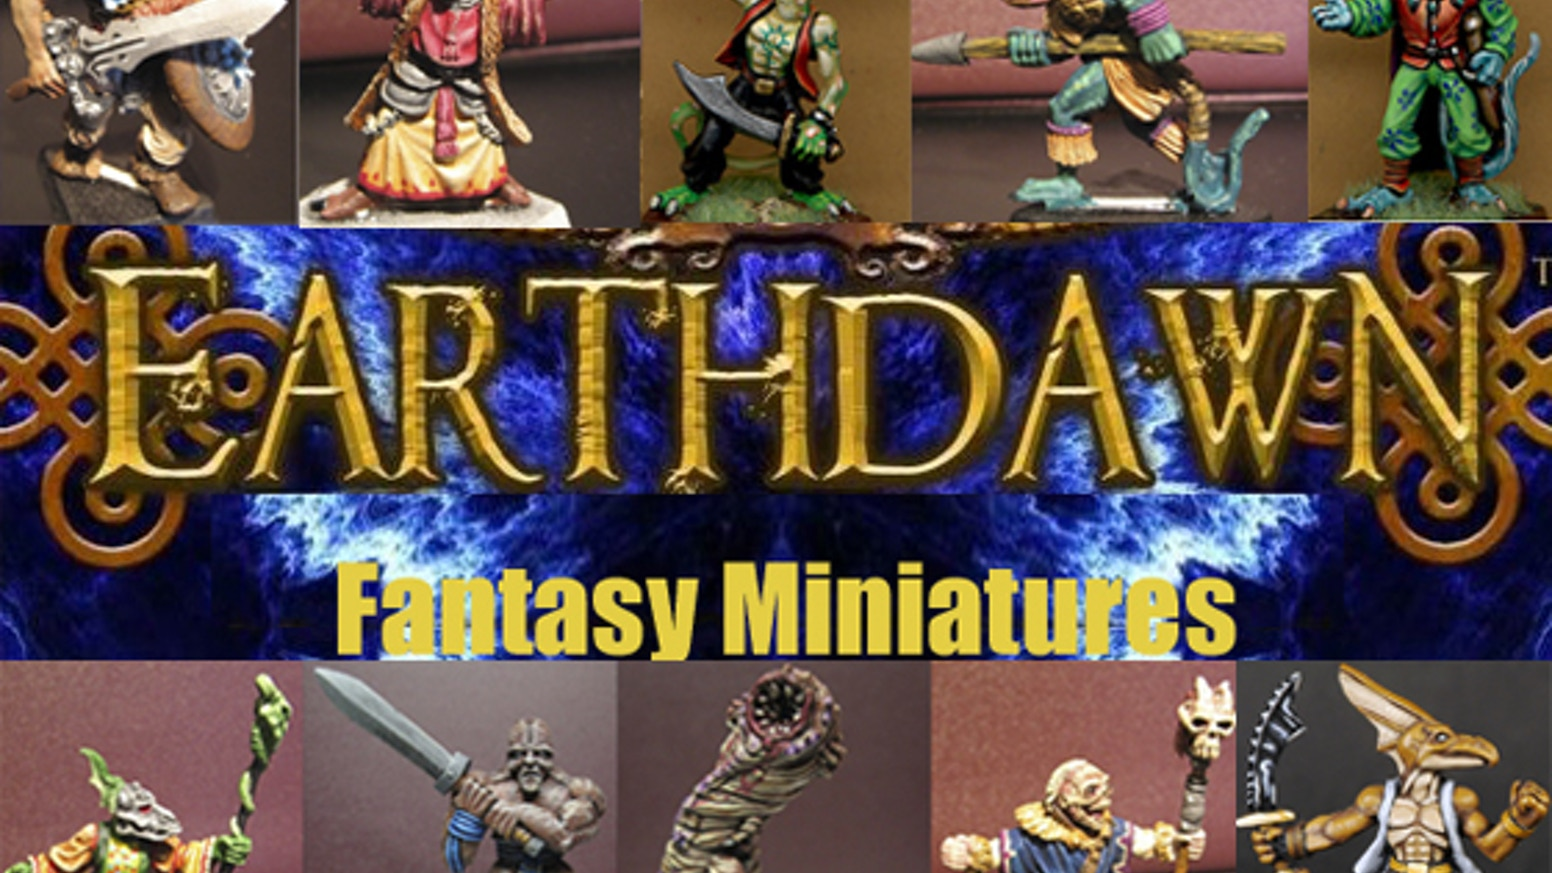 Licenced player character and unique monster miniatures from the Earthdawn fantasy RPG